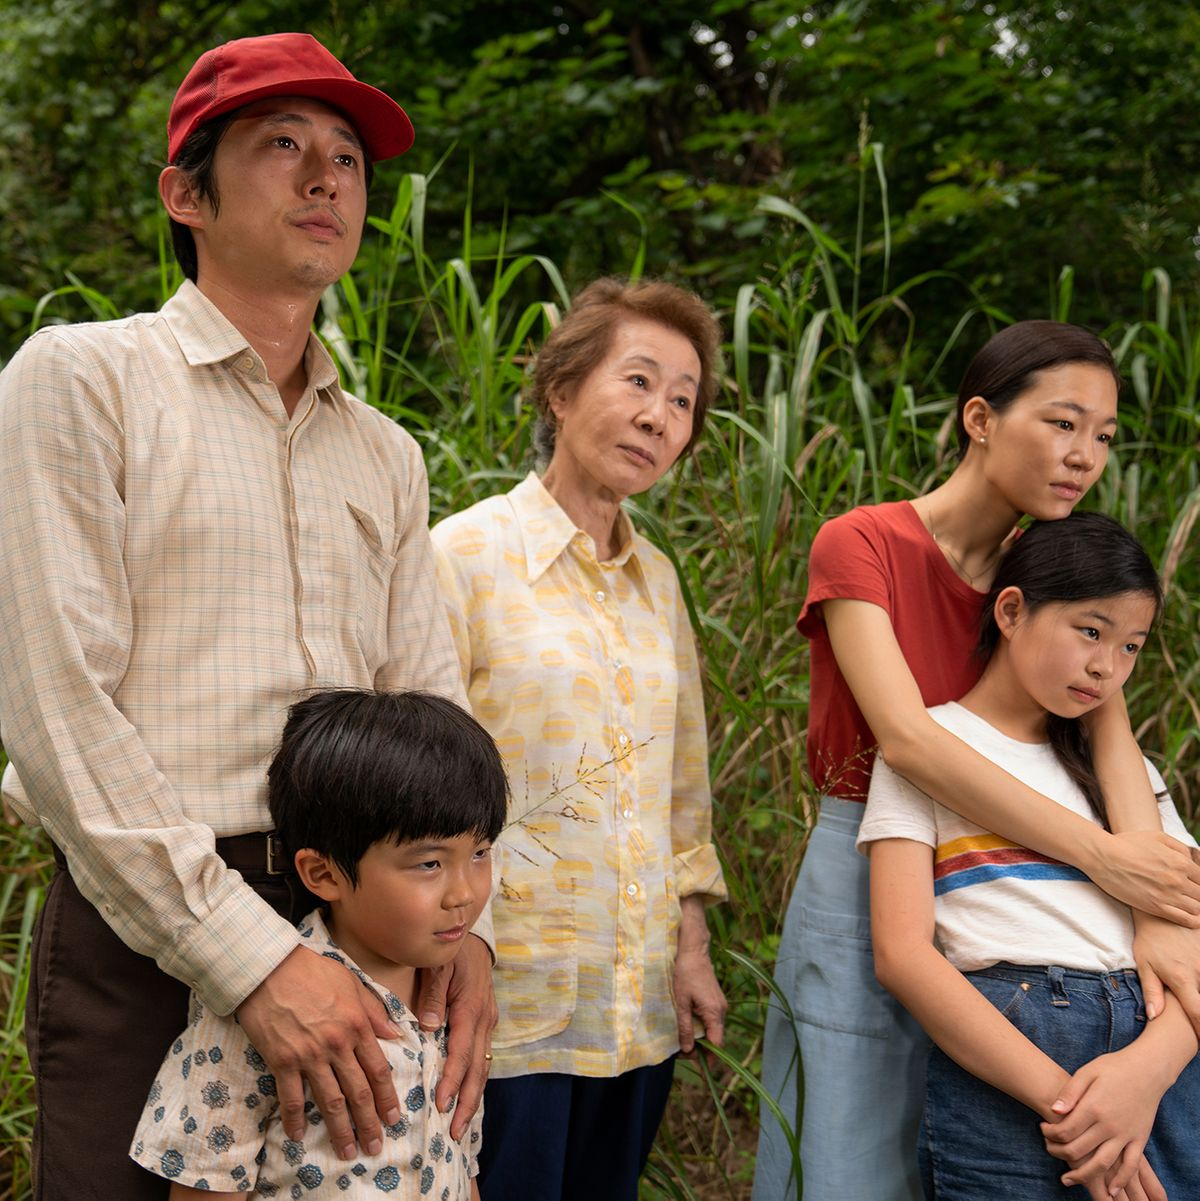 Minari' Movie Review: A Gentle Immigrant Drama Set in U.S.